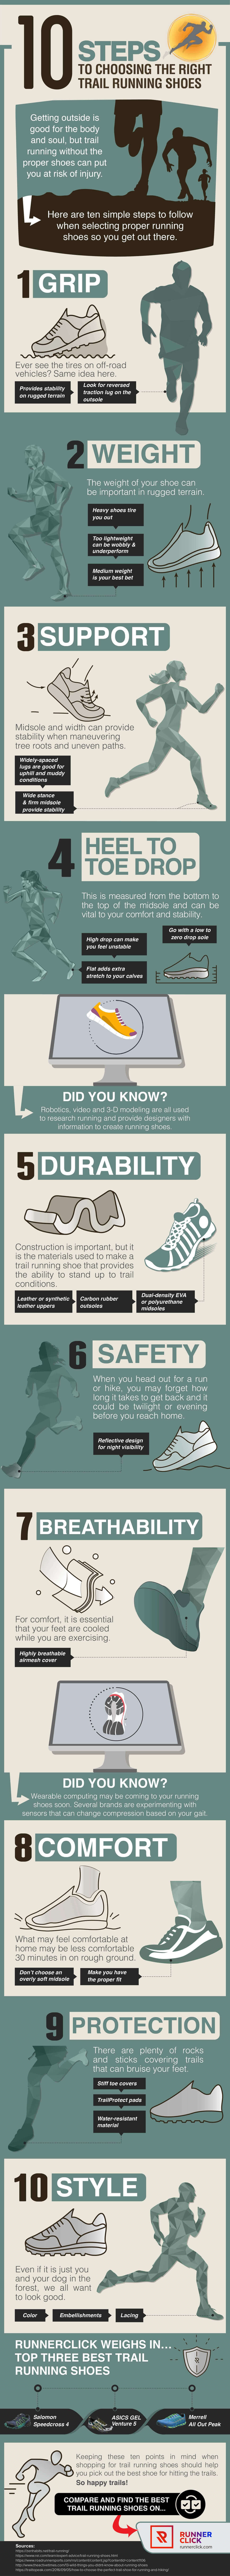 10 Steps to Choosing the Best Pair of Trail Running Shoes